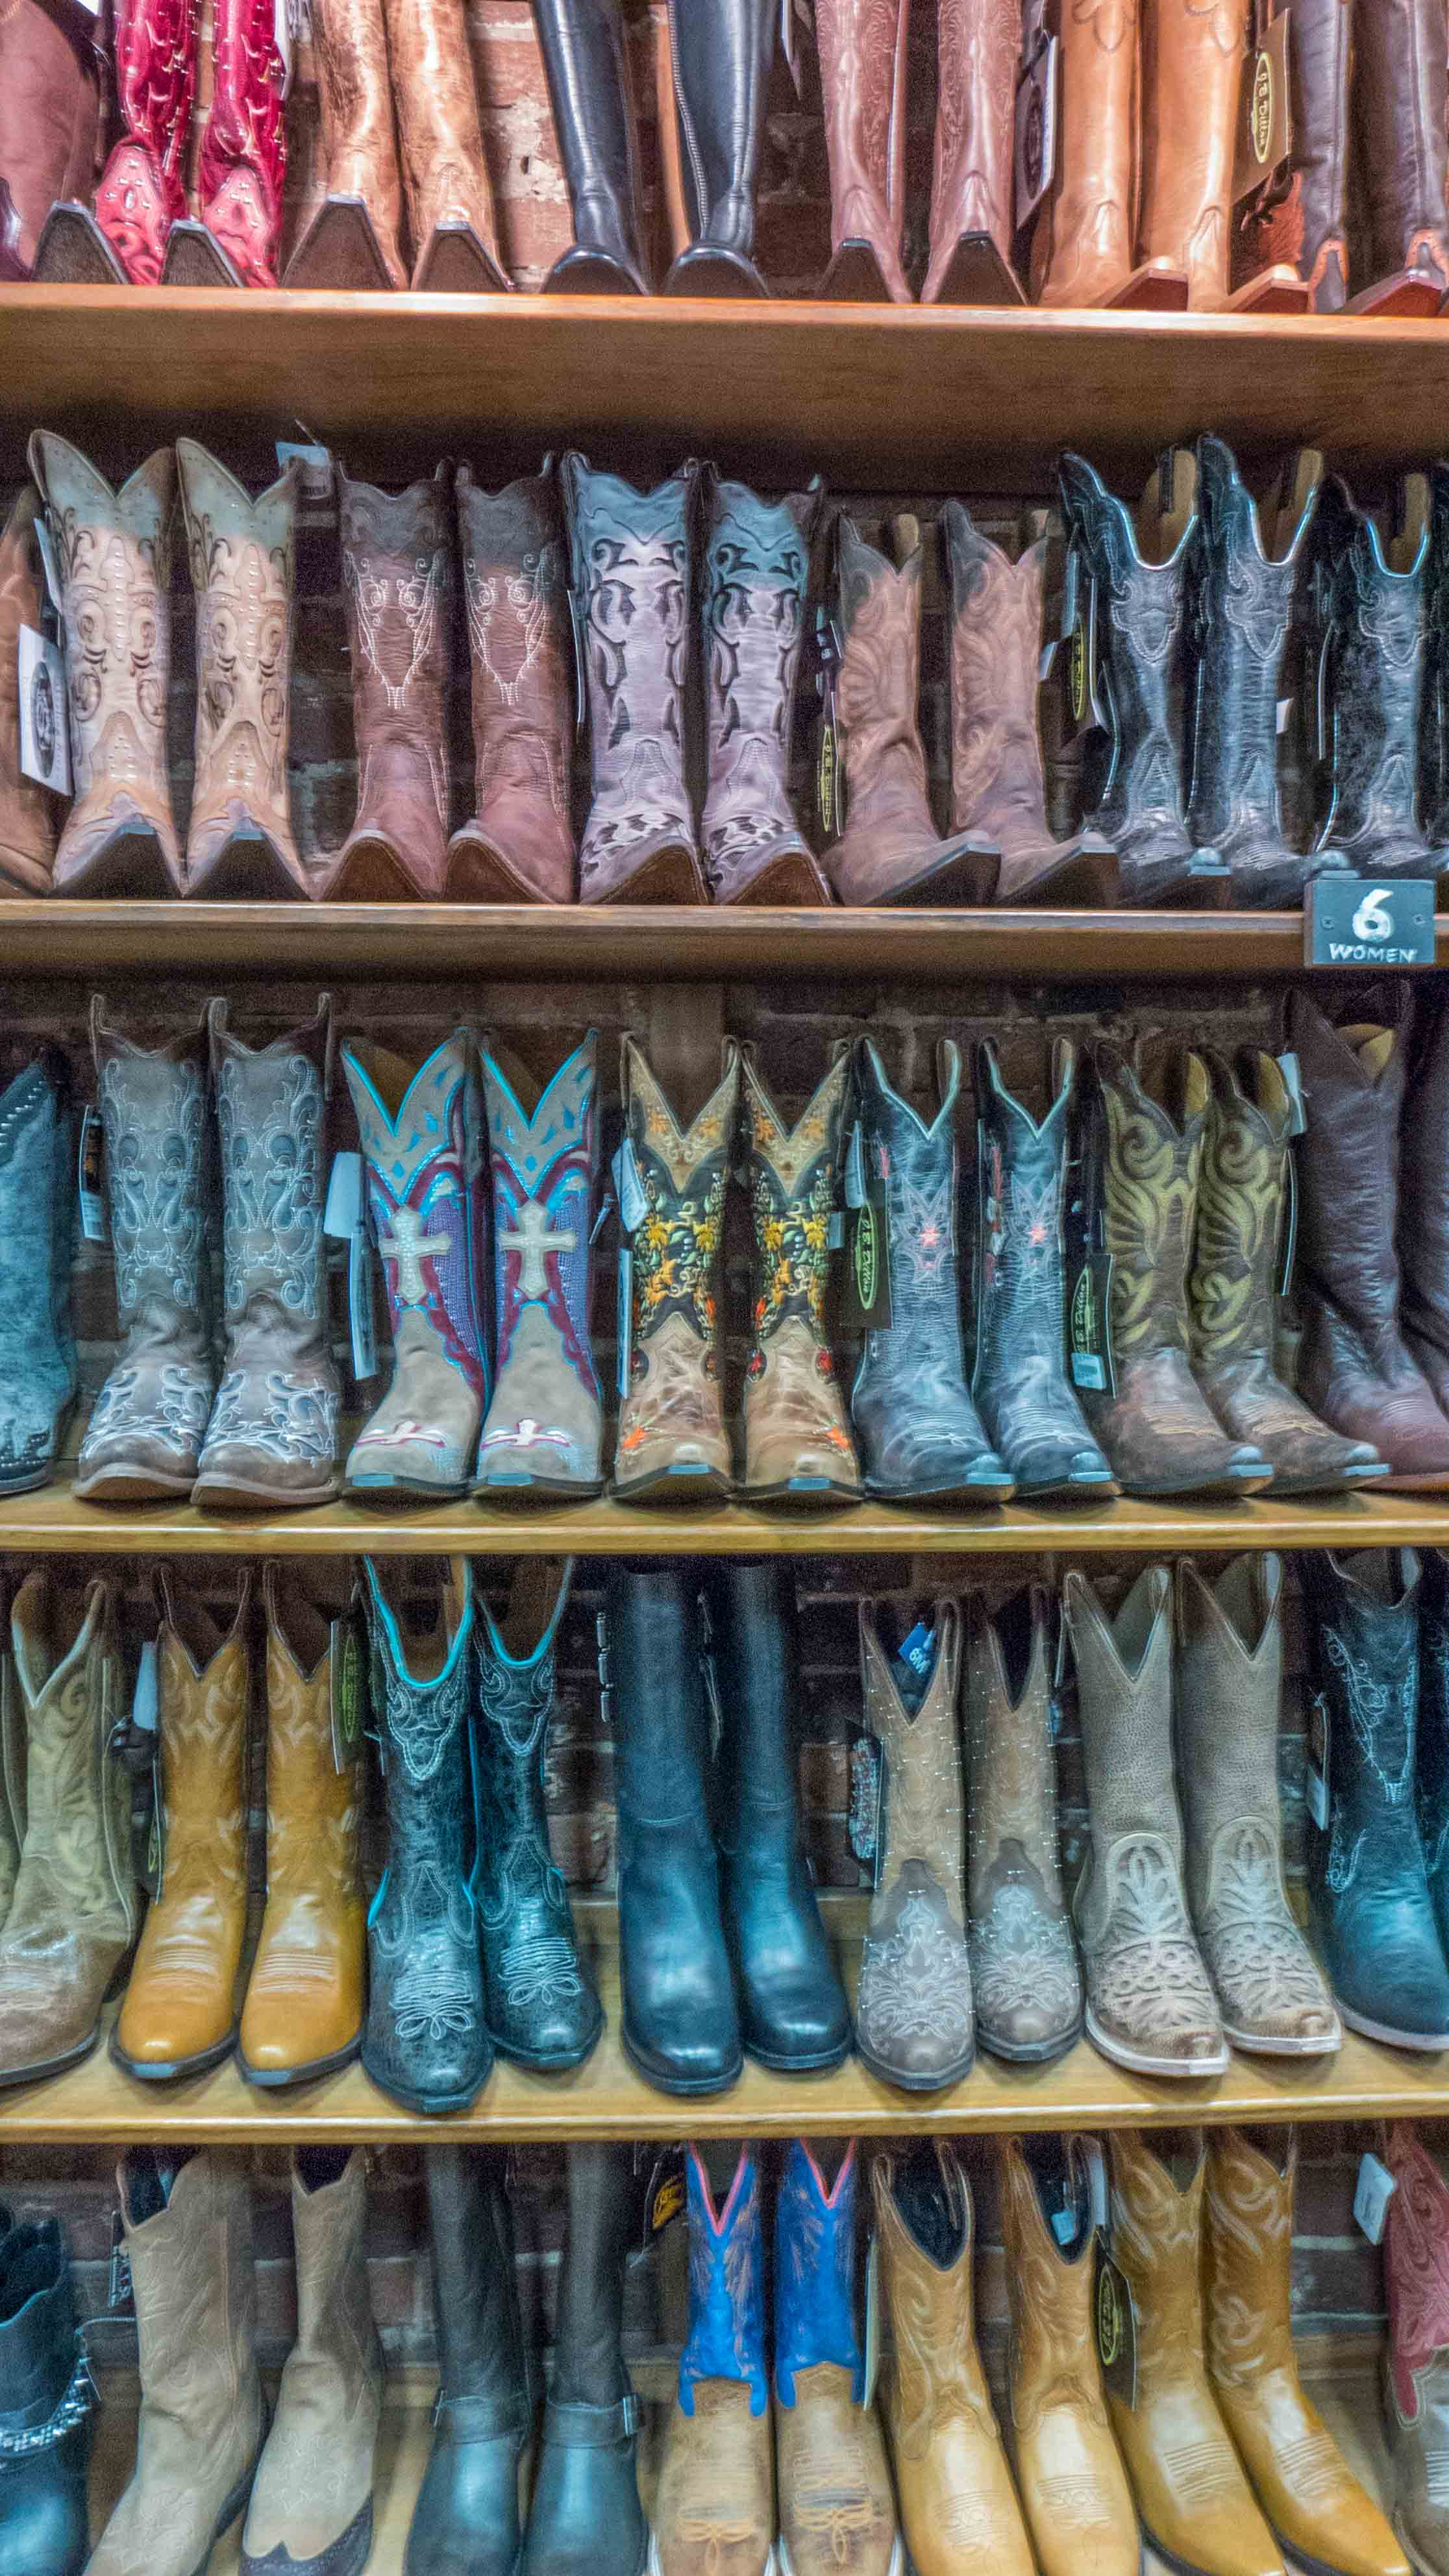 First order of business: buy cowboy boots. Let me tell you, there is no shortage of boots here! I decided to go with a low key pair (seen in previous pic to the far right) from  Boot Country .